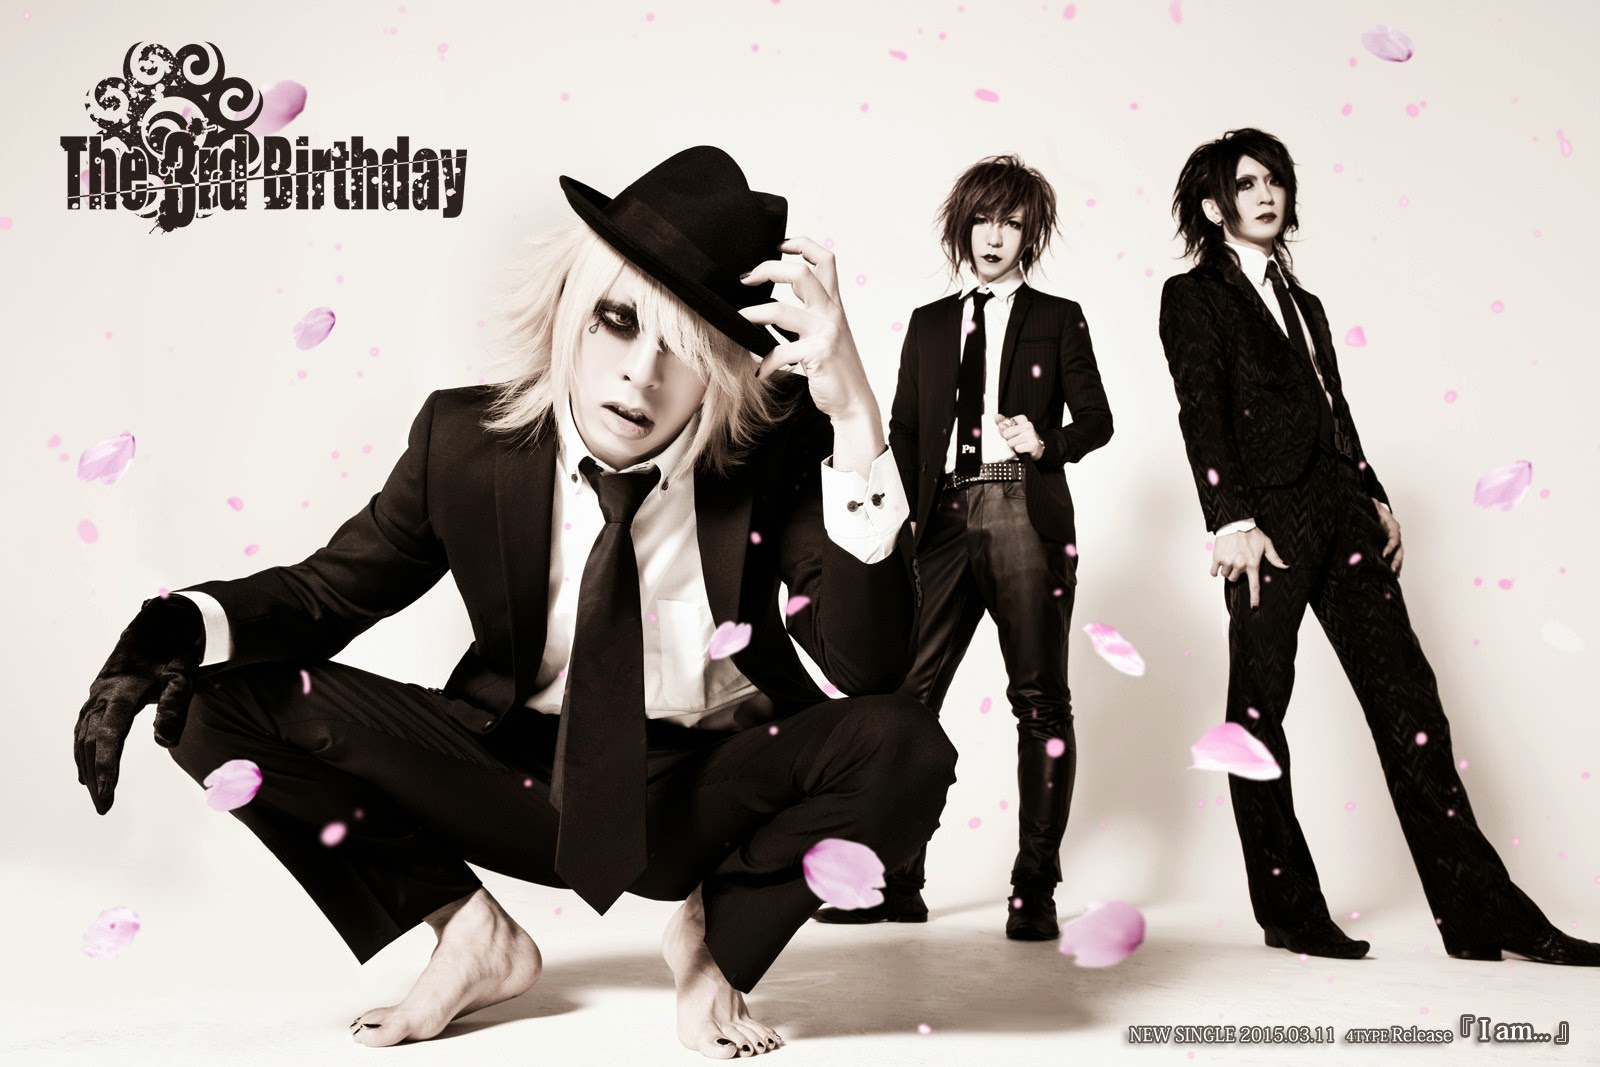 〈Source: The 3rd Birthday Official Website〉